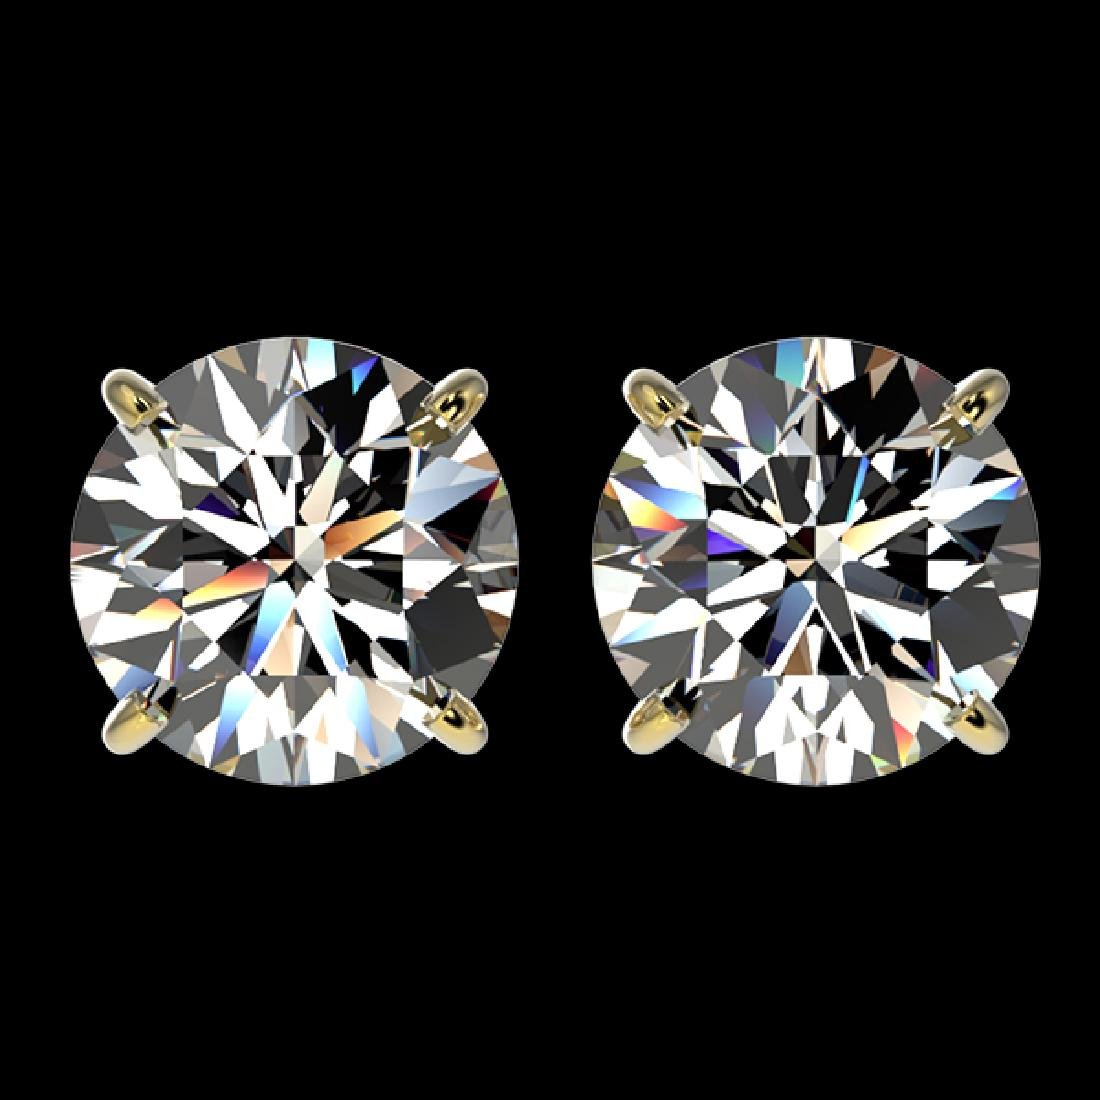 3.05 CTW Certified G-Si Quality Diamond Solitaire Stud